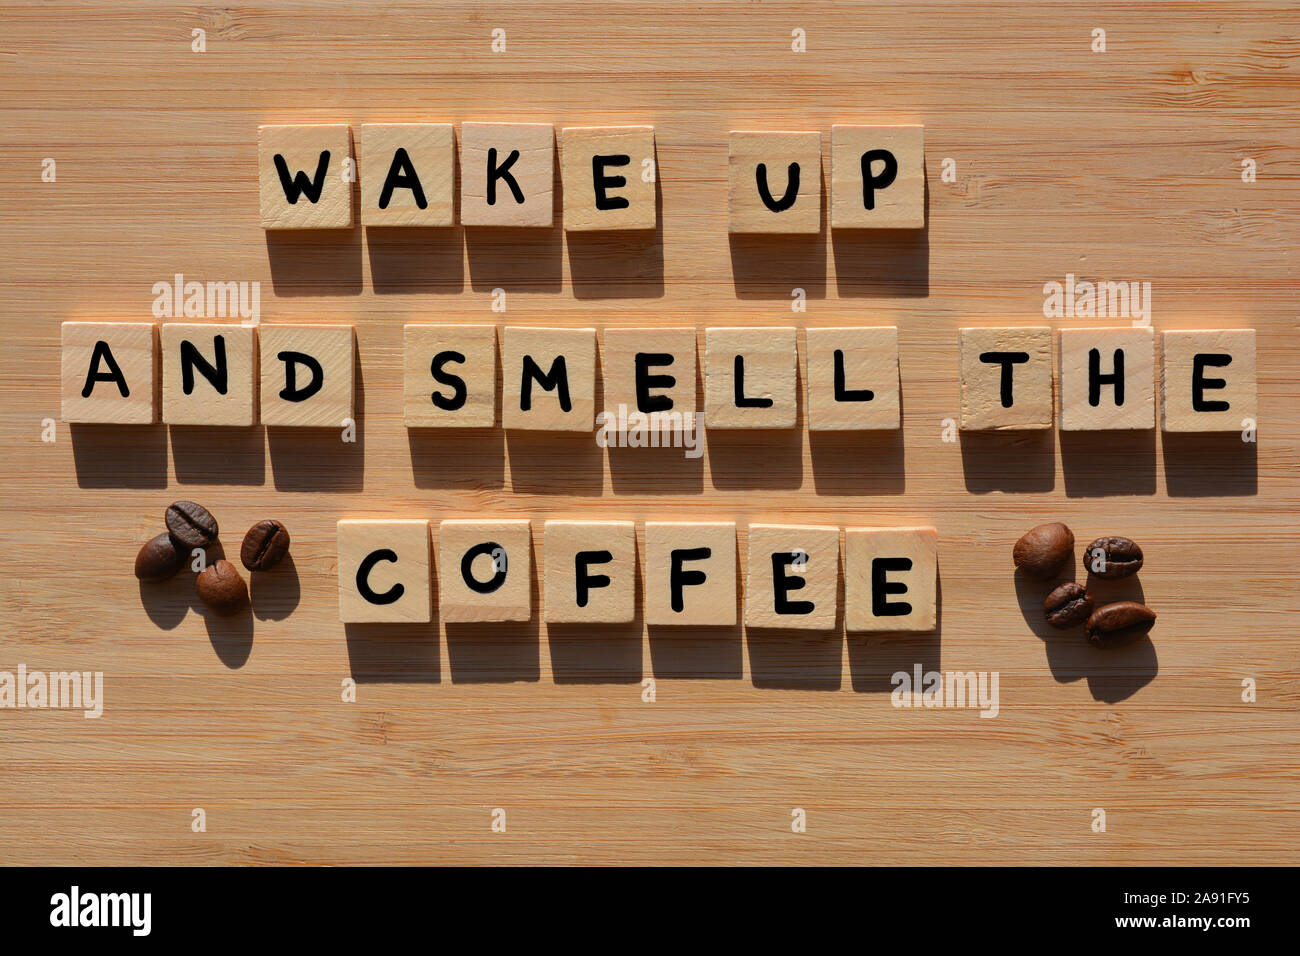 Wake Up And Smell The Coffee in 3D wooden alphabet letters with roasted coffee beans on a bamboo wood background Stock Photo